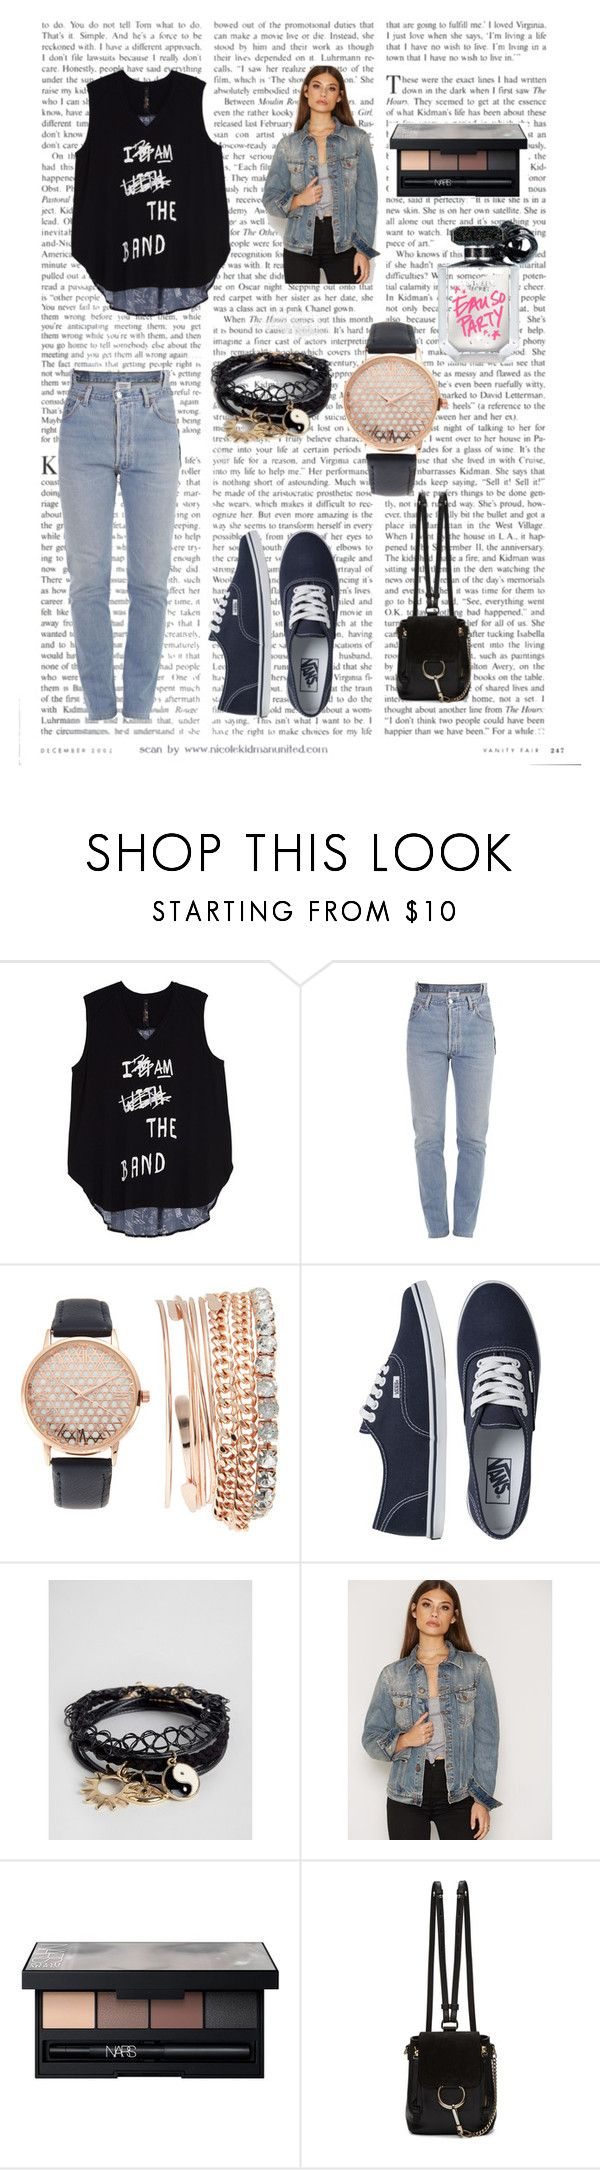 """""""New_post_13"""" by emra-cehajic ❤ liked on Polyvore featuring Melissa McCarthy Seven7, Vetements, Jessica Carlyle, Vans, ASOS, Nudie Jeans Co., NARS Cosmetics, Chloé, Victoria's Secret and tops"""